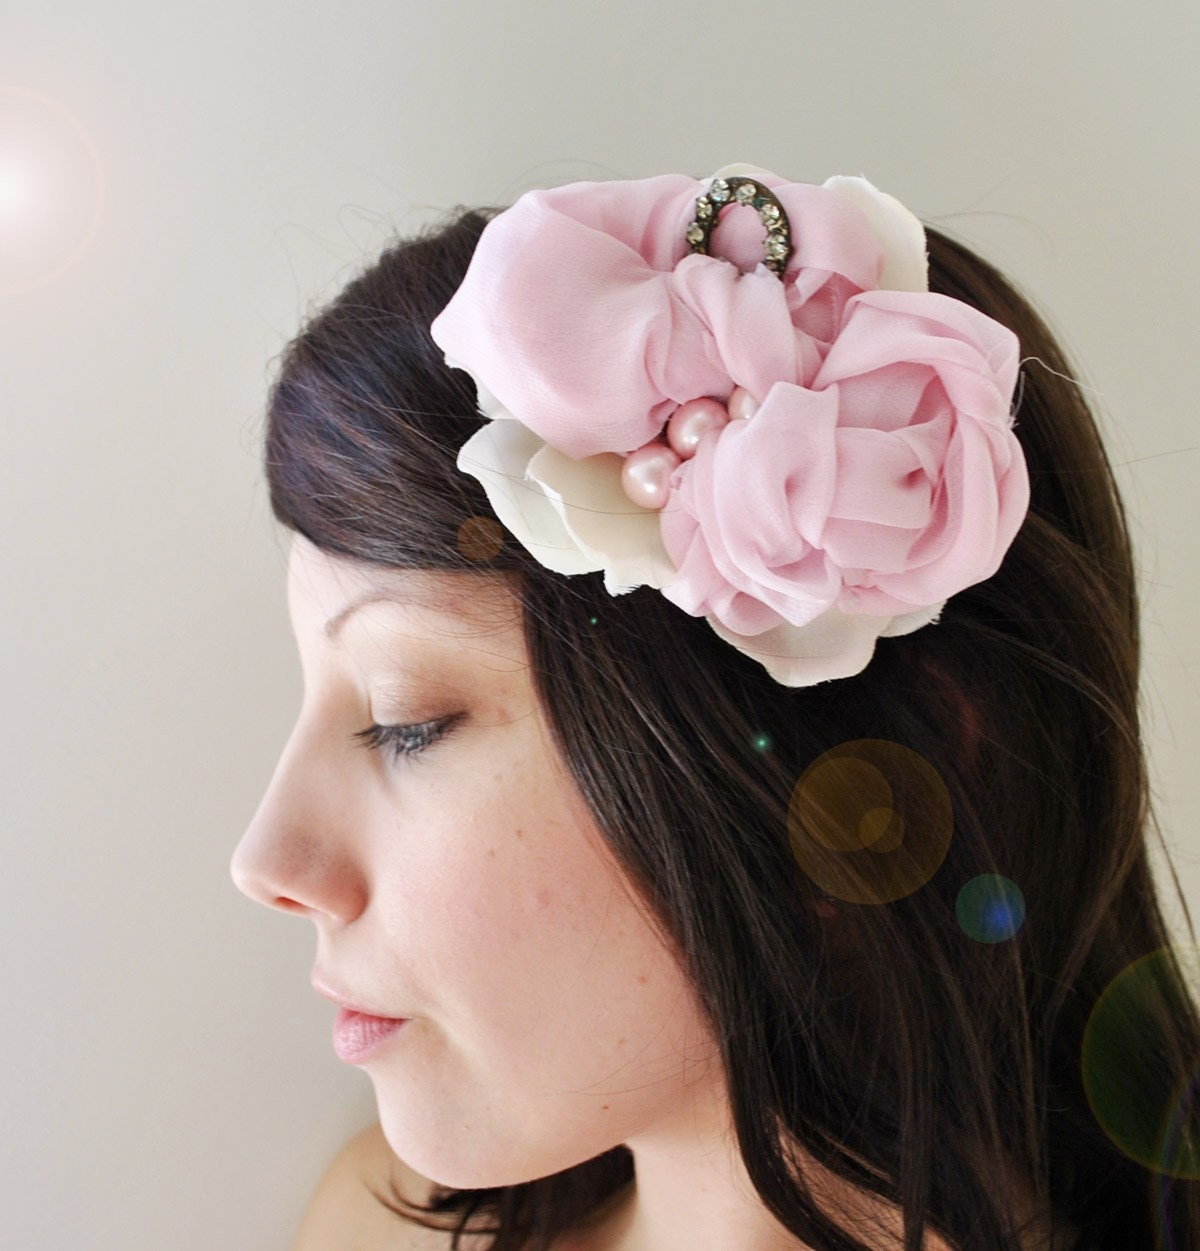 stuff and nonsense - whimsical hair comb